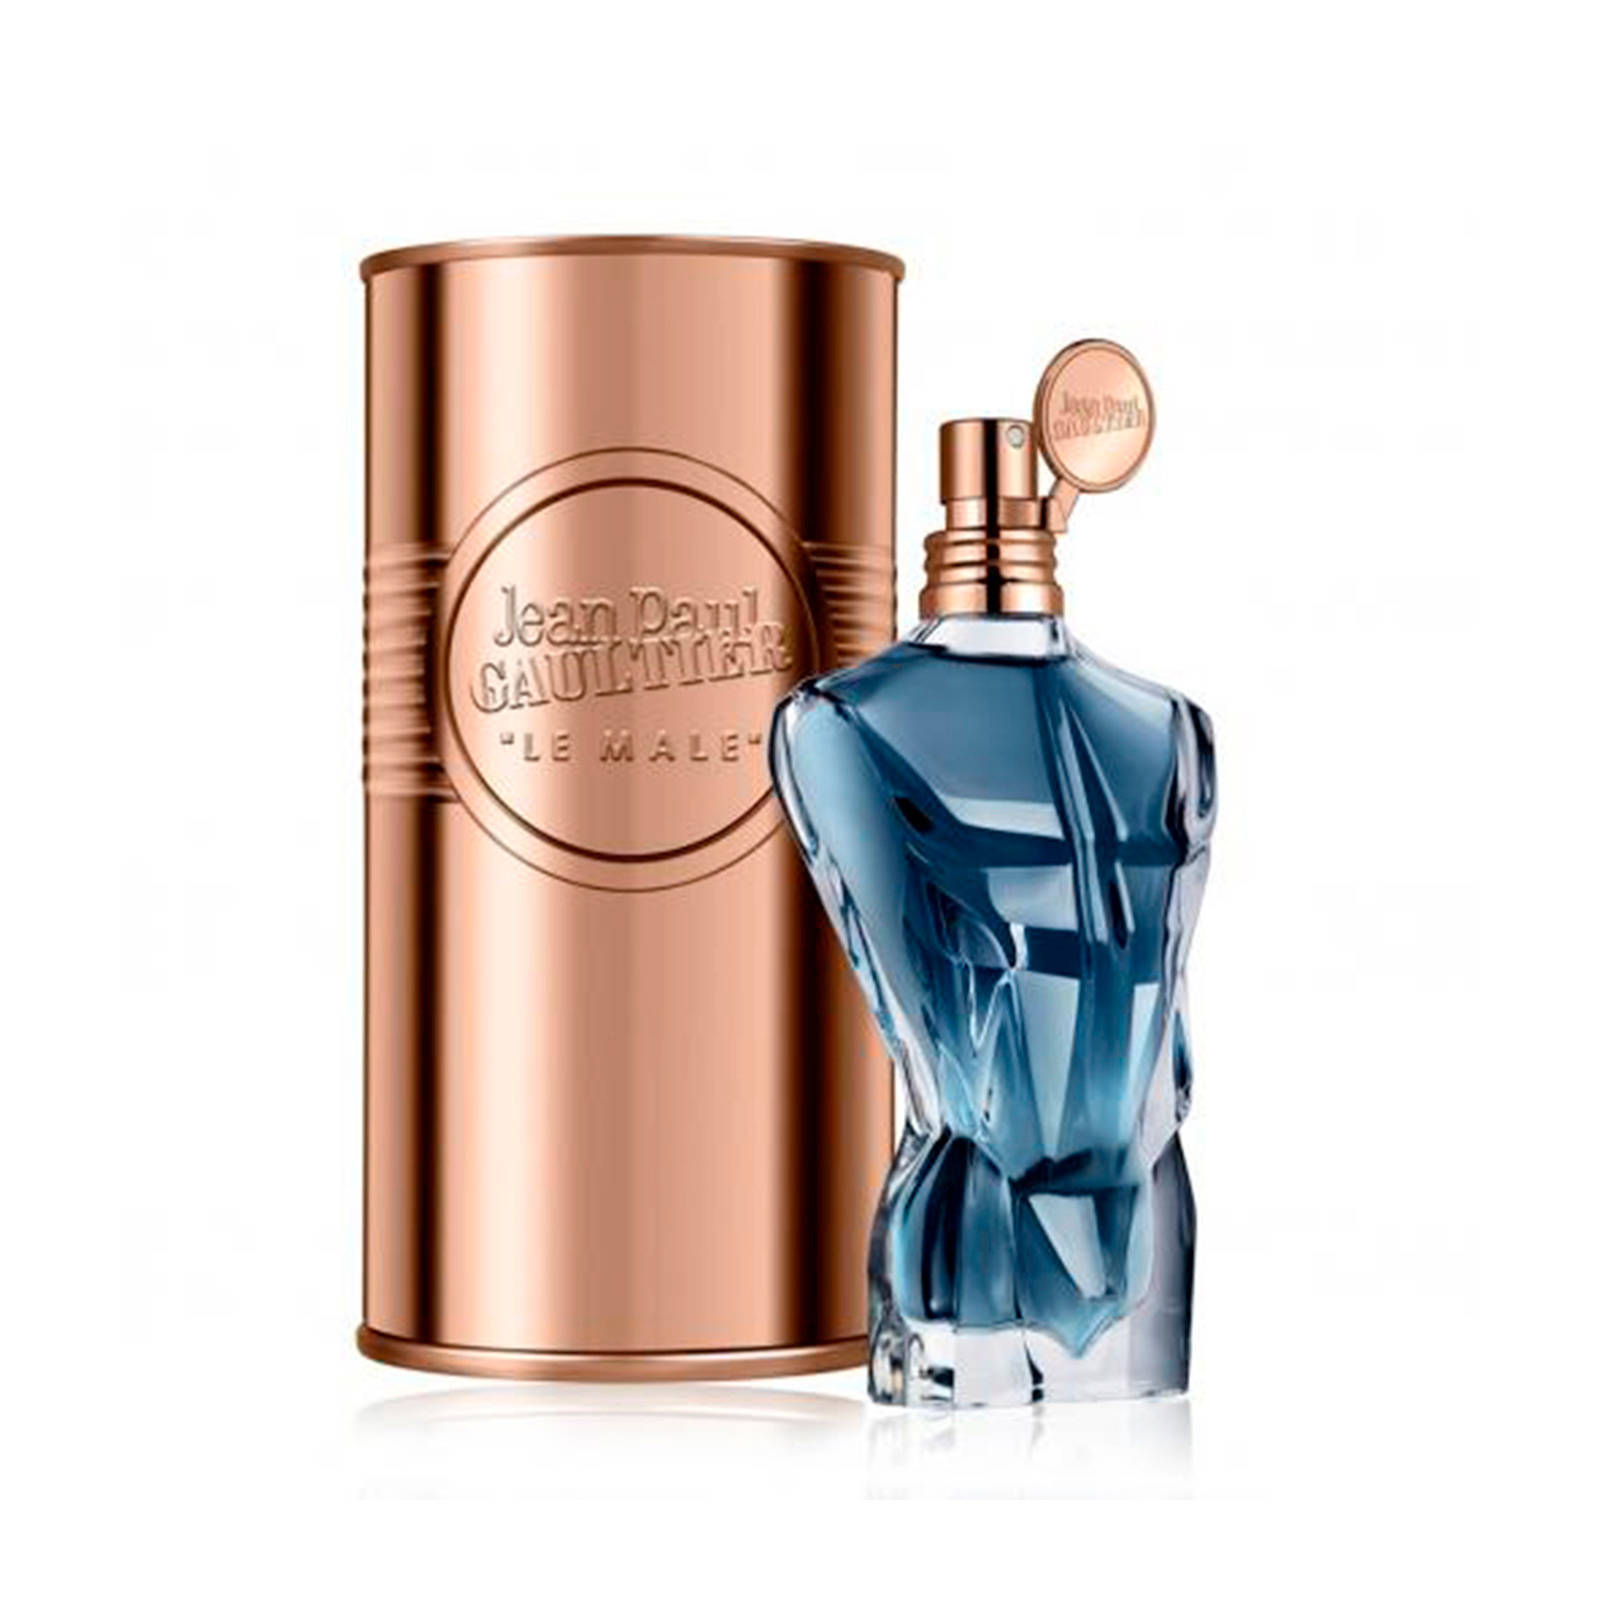 De Parfum Eau 75 Le Male Ml Essence WEH2D9I